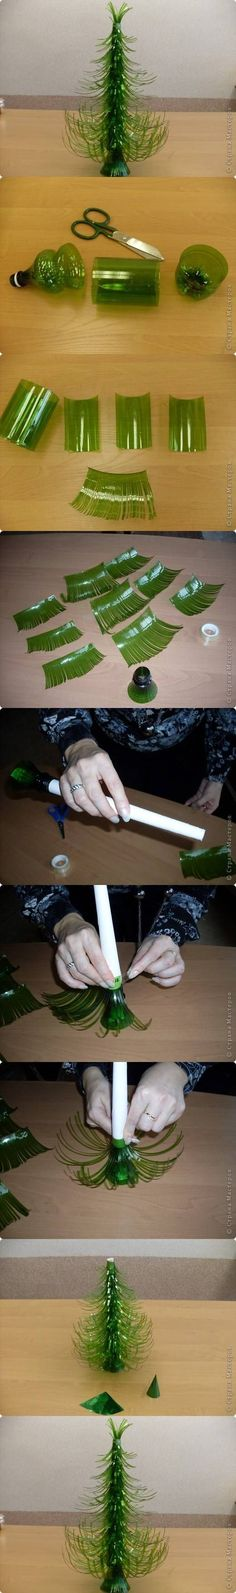 DIY Plastic Bottle Christmas Trees DIY Projects | UsefulDIY.com Follow Us on Facebook --> https://www.facebook.com/UsefulDiy Diy Christmas Tree, Xmas Tree, Christmas Projects, Christmas Holidays, Plastic Christmas Tree, Plastic Bottle Art, Recycle Plastic Bottles, Plastic Craft, Diy Bottle